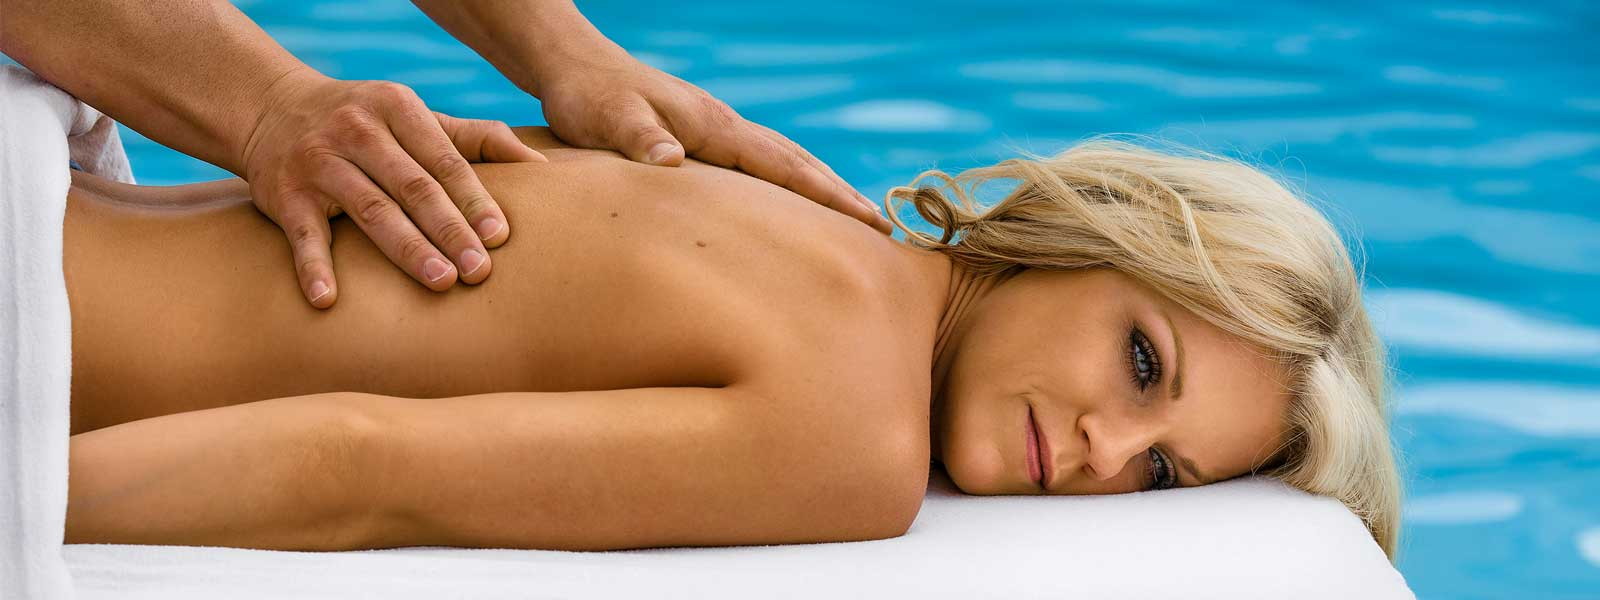 woman getting a massage pool-side at the Fairmont Hot Springs spa resort